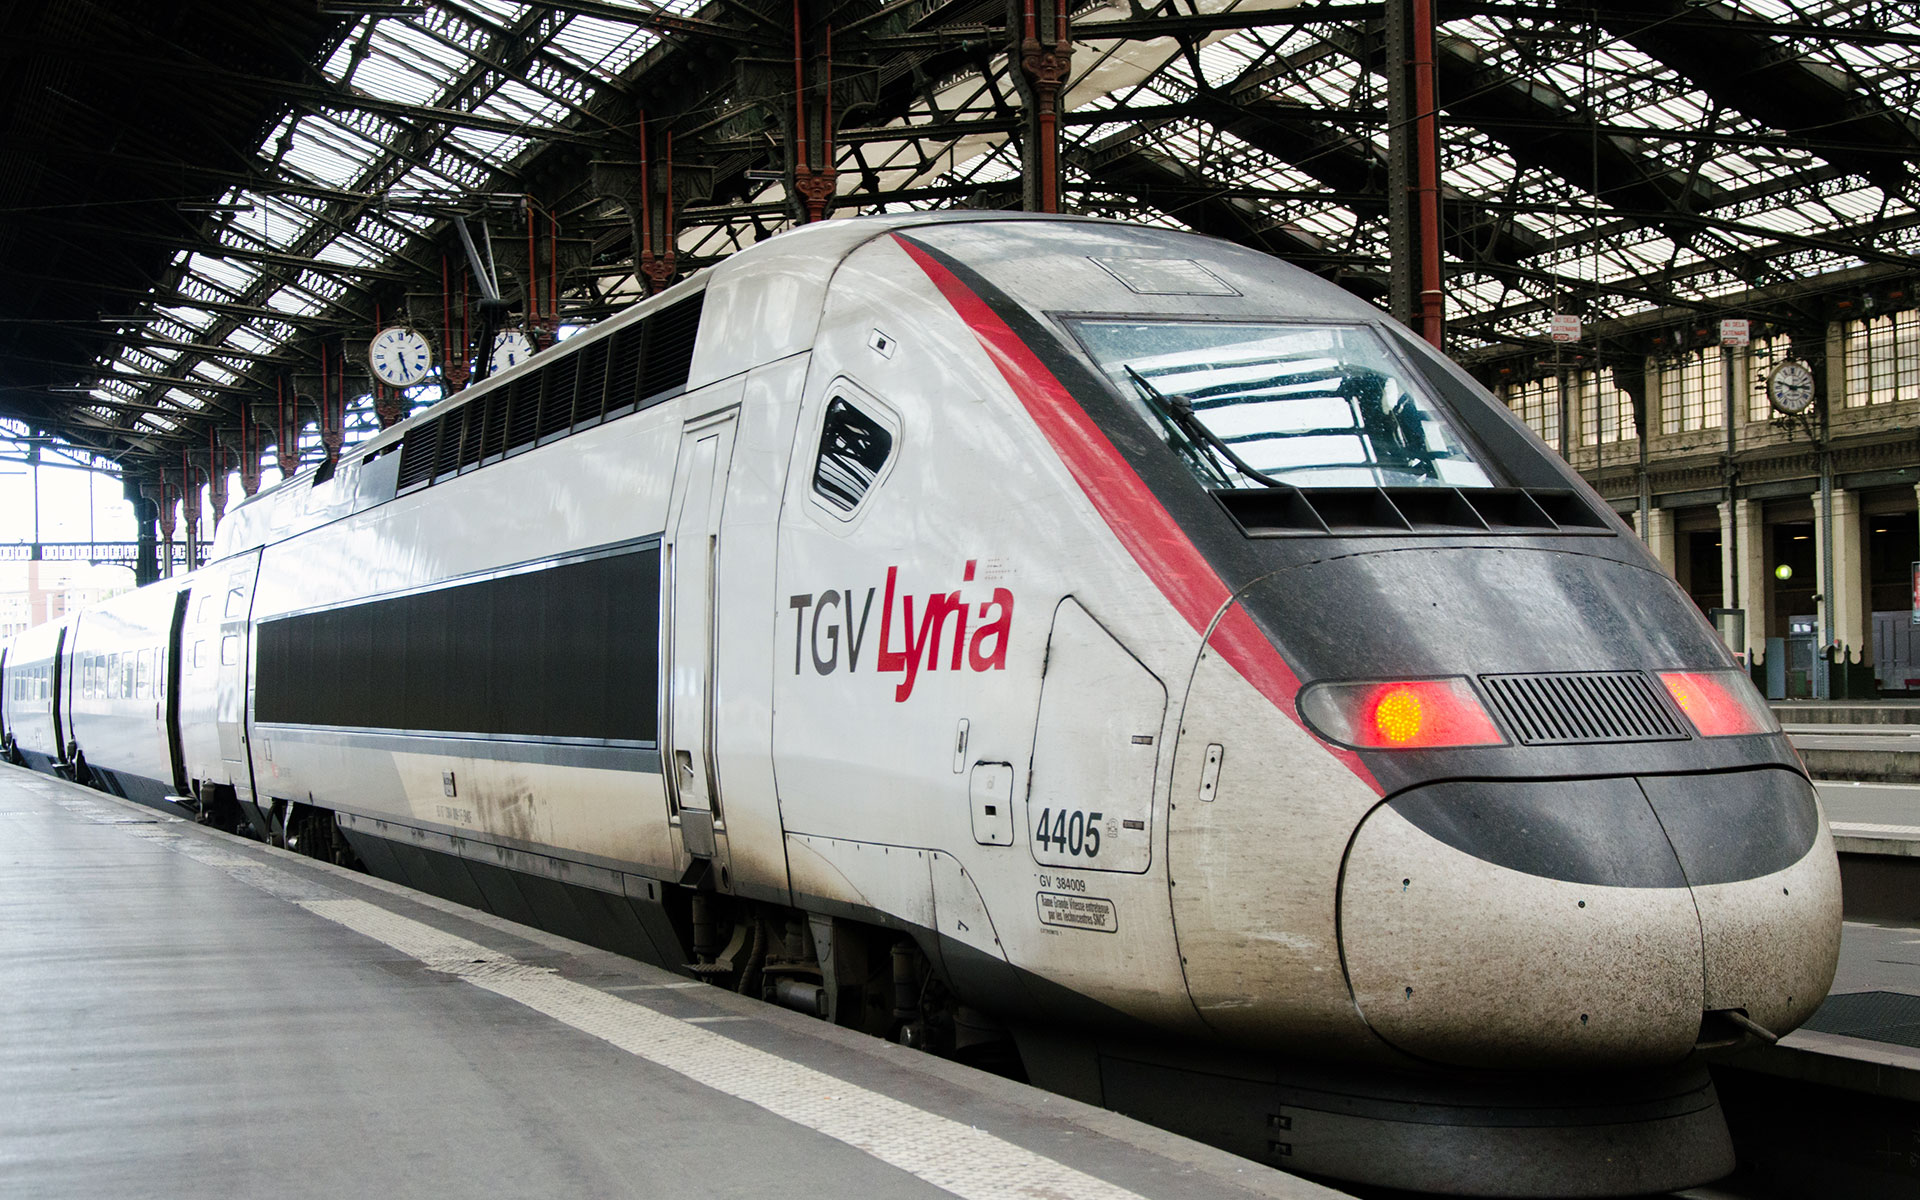 TGV Lyria trains from Paris to Switzerland can now be booked four months in advance (photo © Yinglina / dreamstime.com)